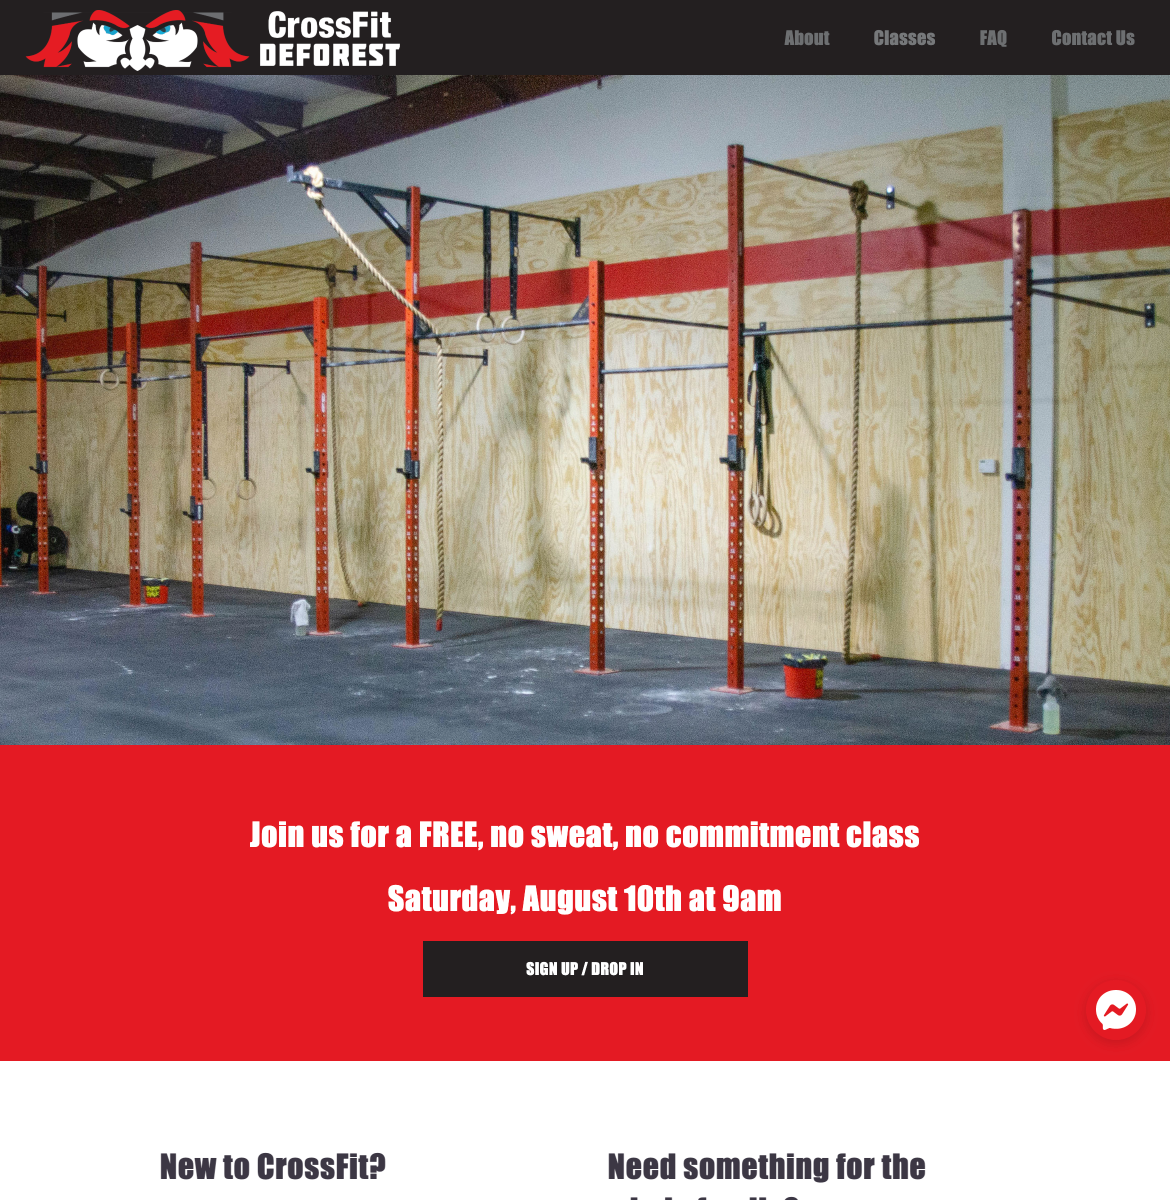 CrossFit DeForest Home Page